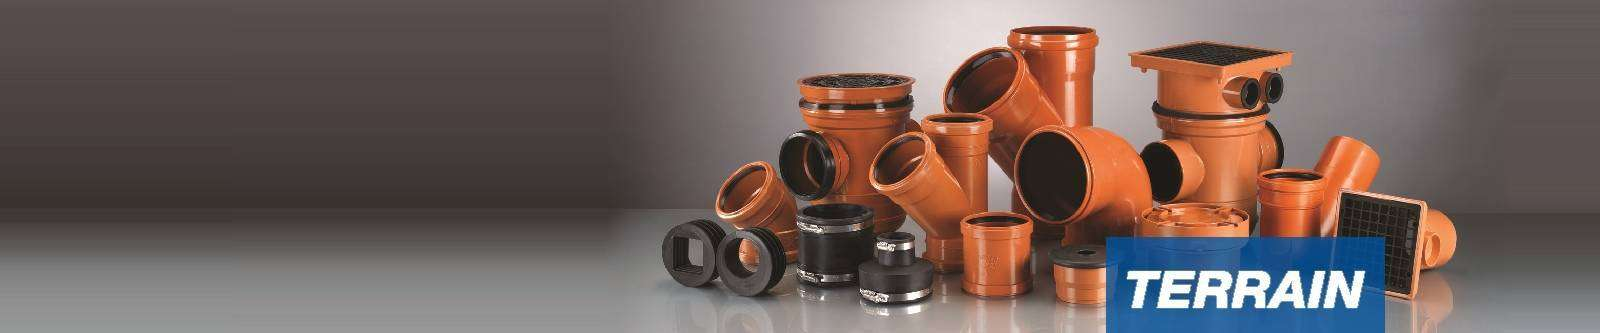 Terrain underground drainage polypipe international for Below ground drainage systems explained